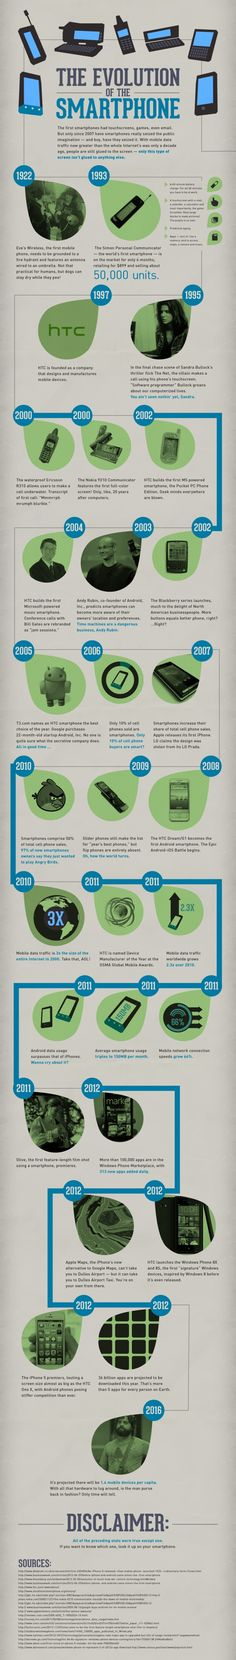 Evolution of the Smartphone by HTC [Infographic]